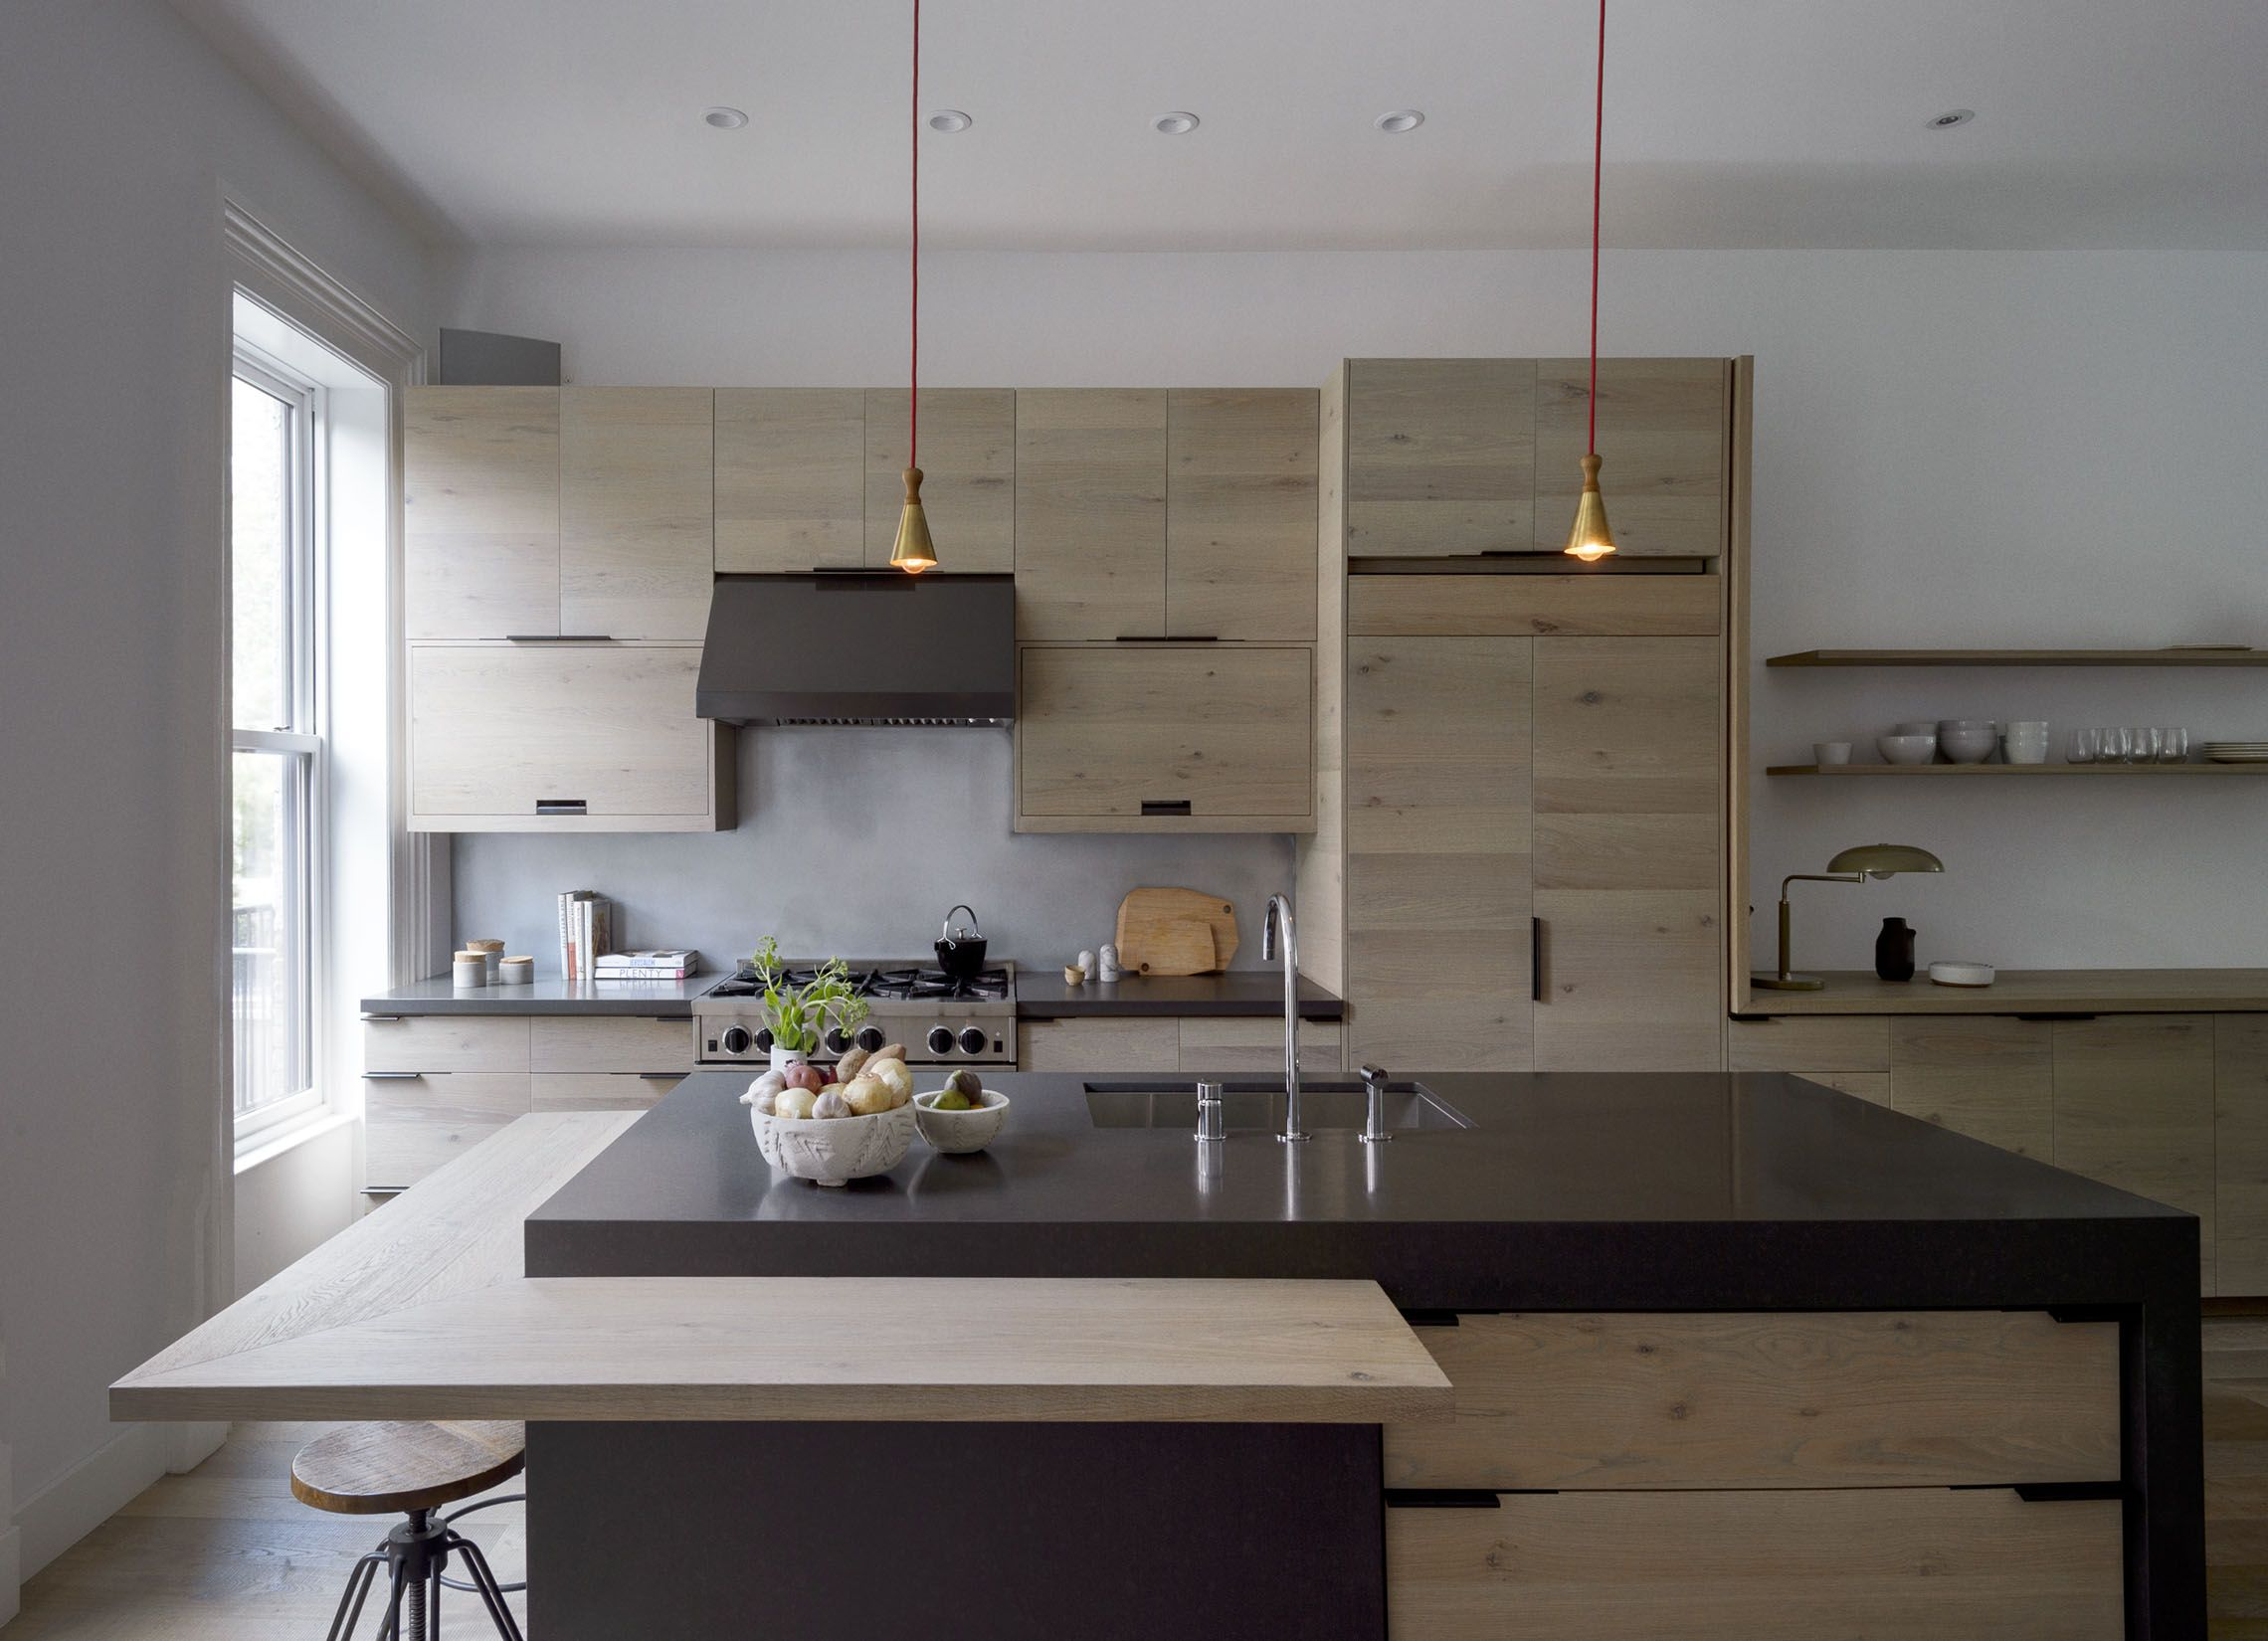 Kitchen of the Week: Masterful Storage in a Workstead Design